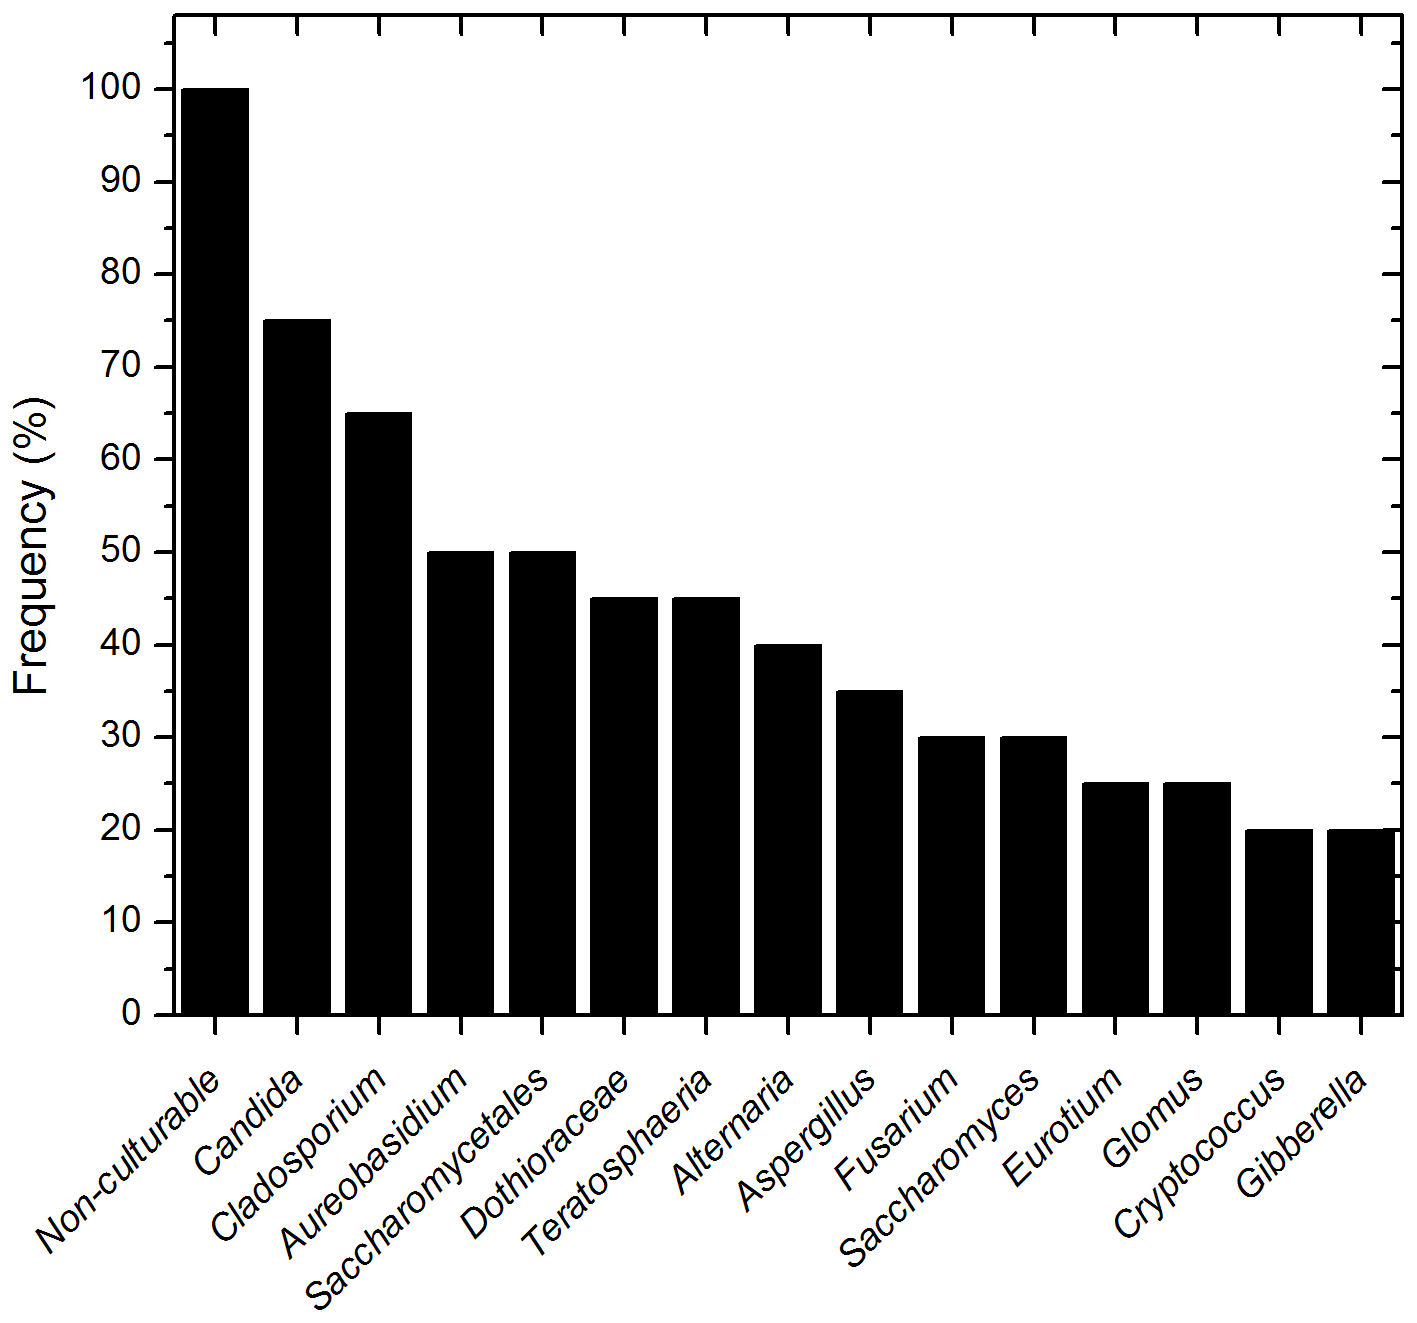 Frequency of fungal genera present in more than 20 percent of the tested samples.